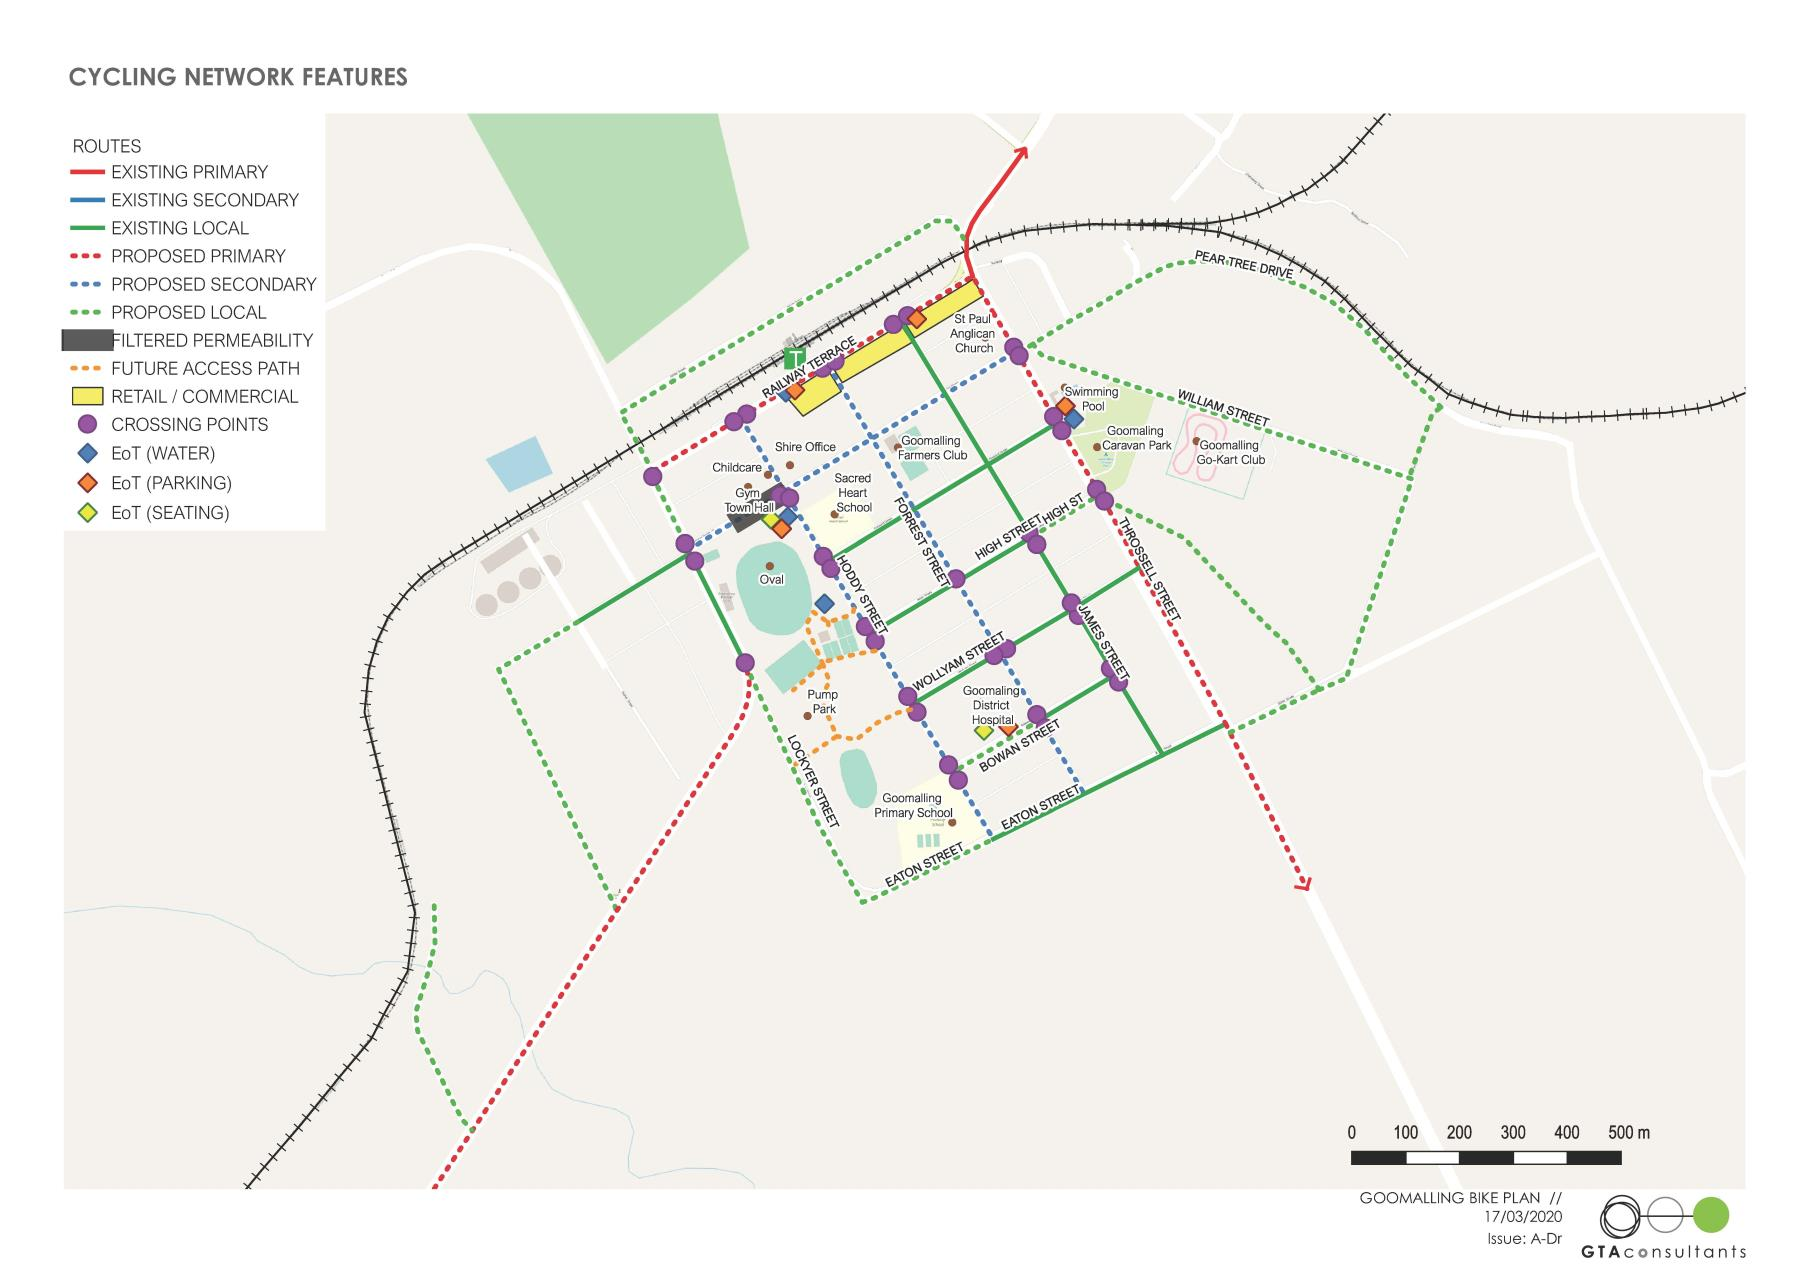 Cycling Network Upgrades Map